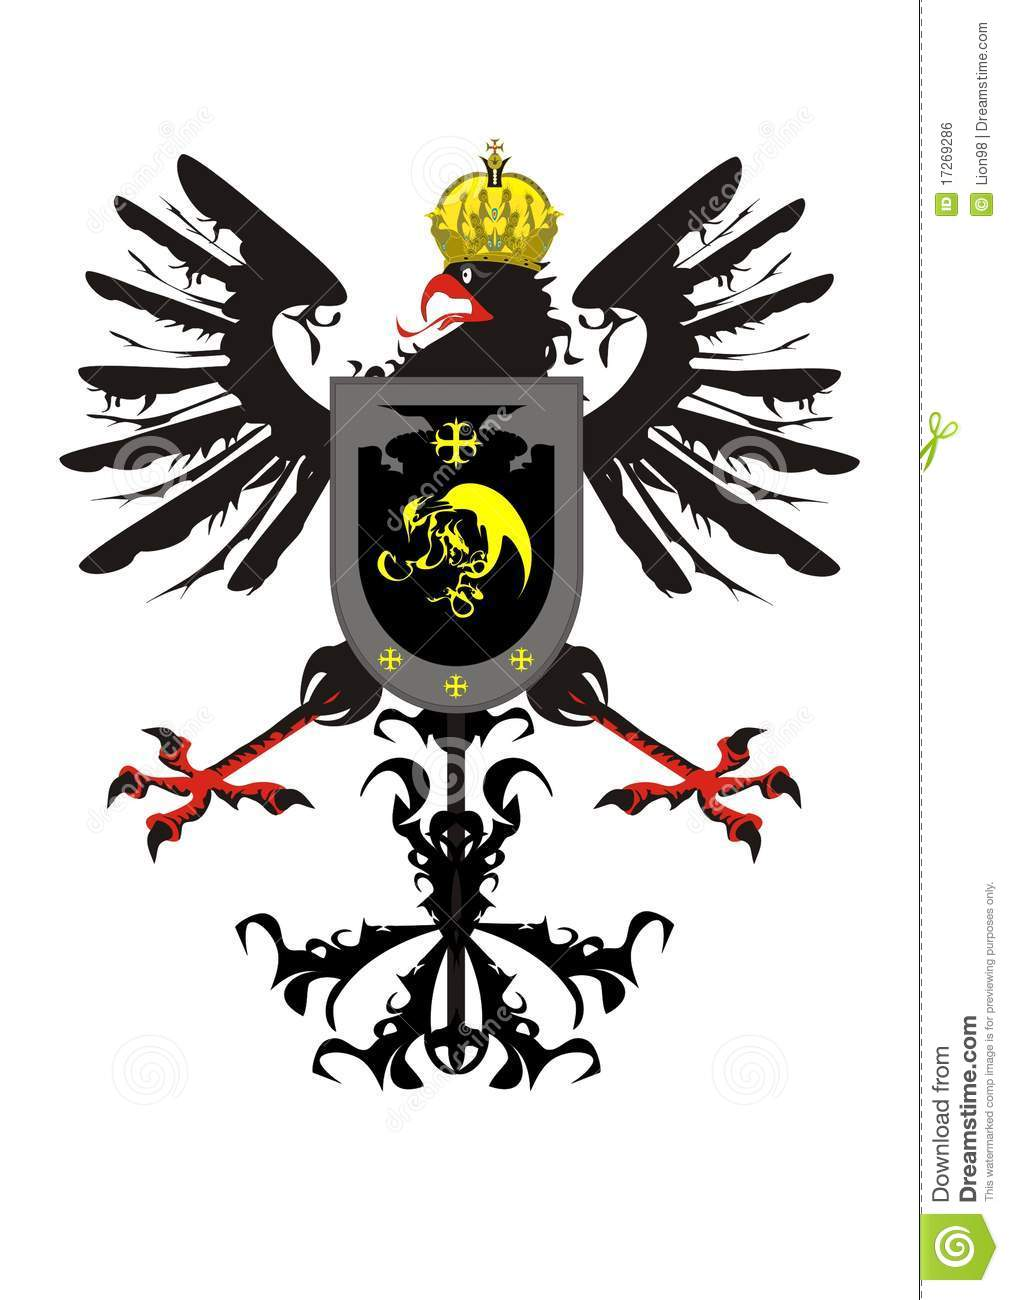 Car Shield Prices >> Heraldic Eagle With A Crown And A Shield Stock Vector - Illustration of emblem, badge: 17269286